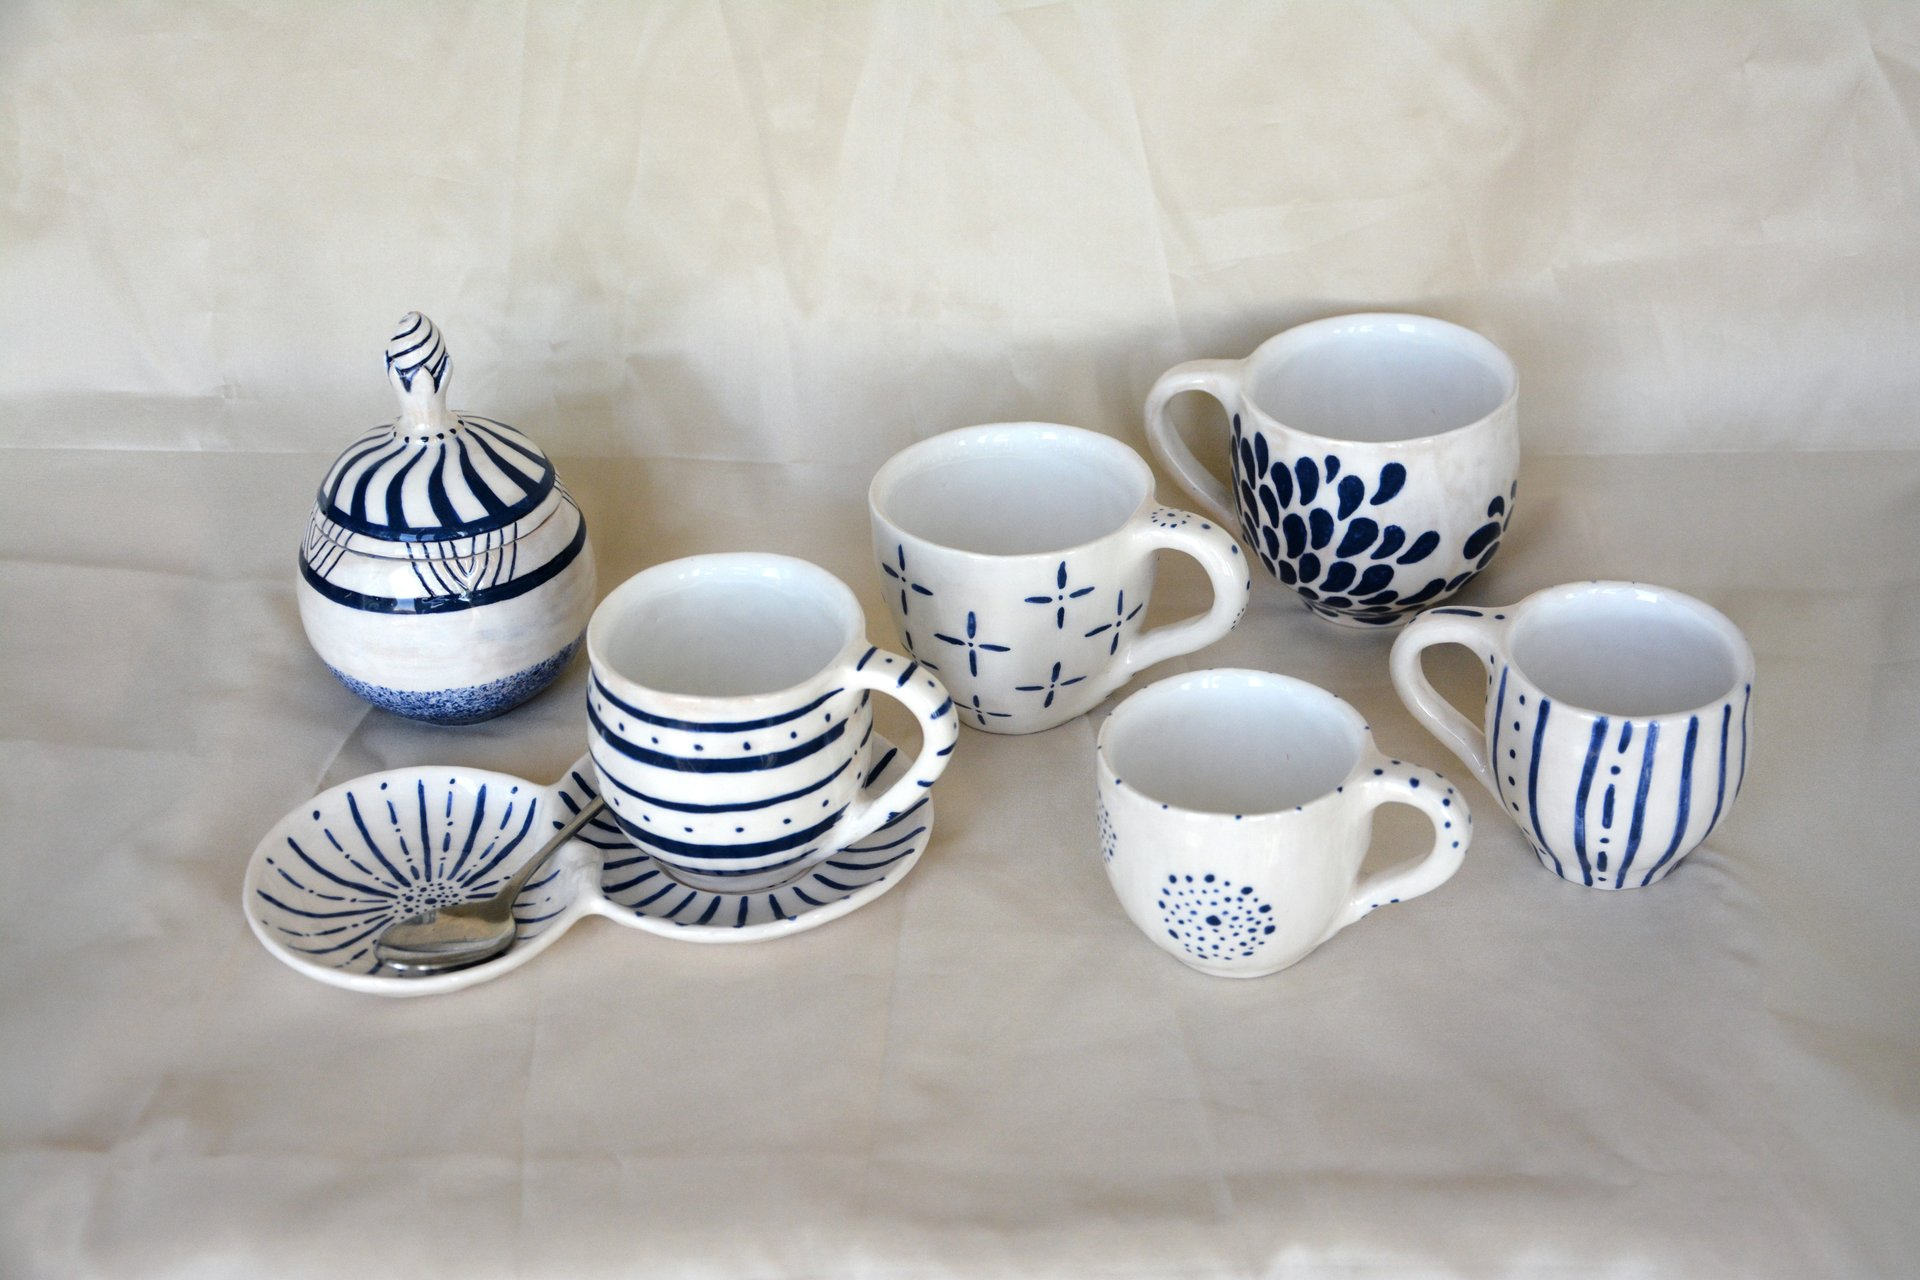 White with blue pattern Strips - Cups, glasses, mugs, height - 7,5 cm, volume - 250 ml, photo 4 of 4.